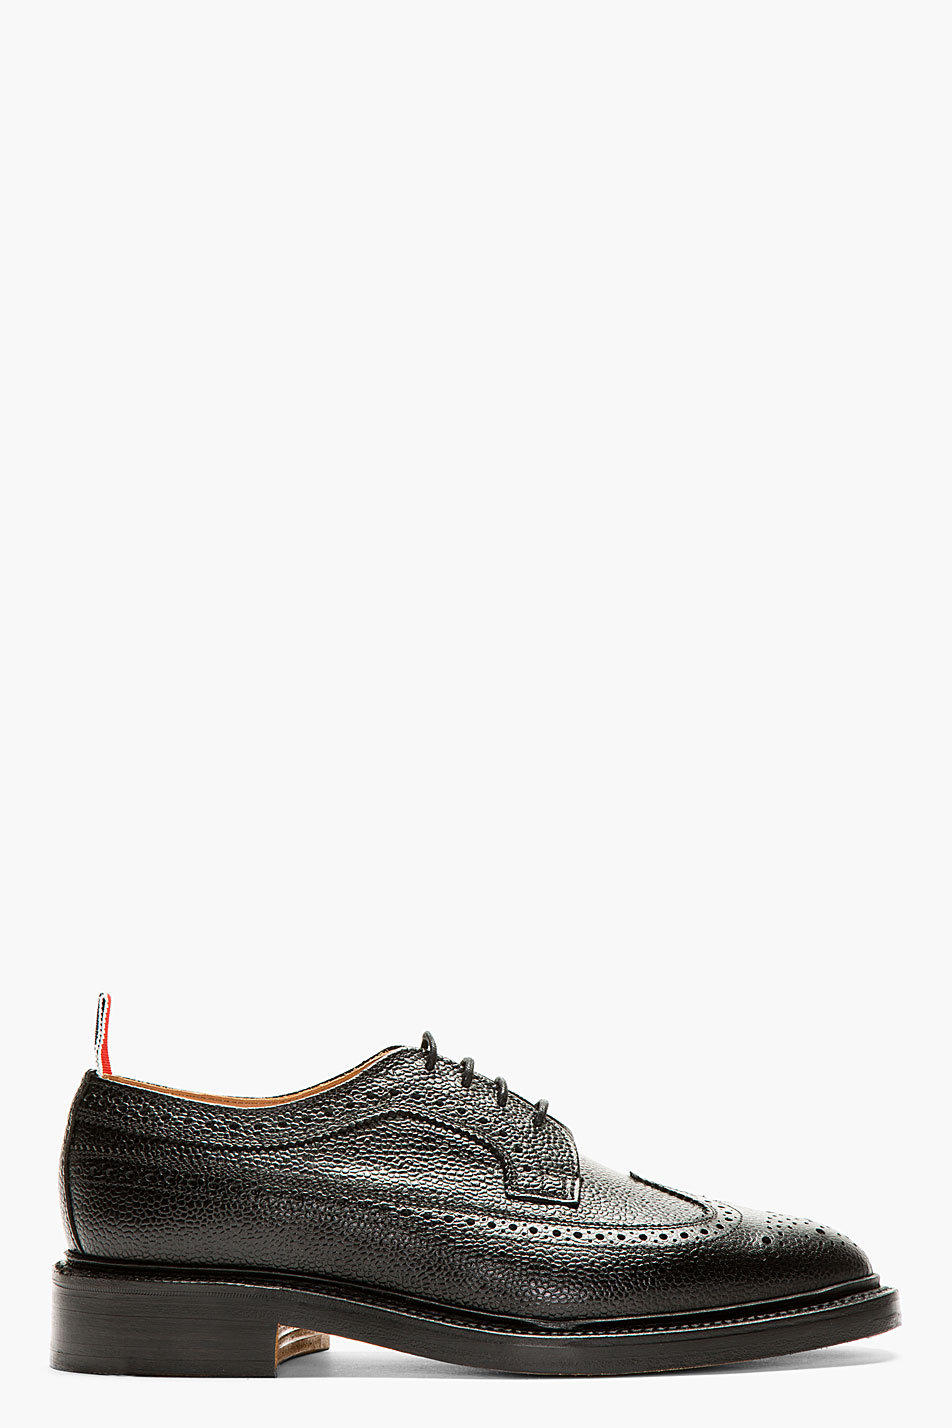 Thom browne black leather longwing brogues